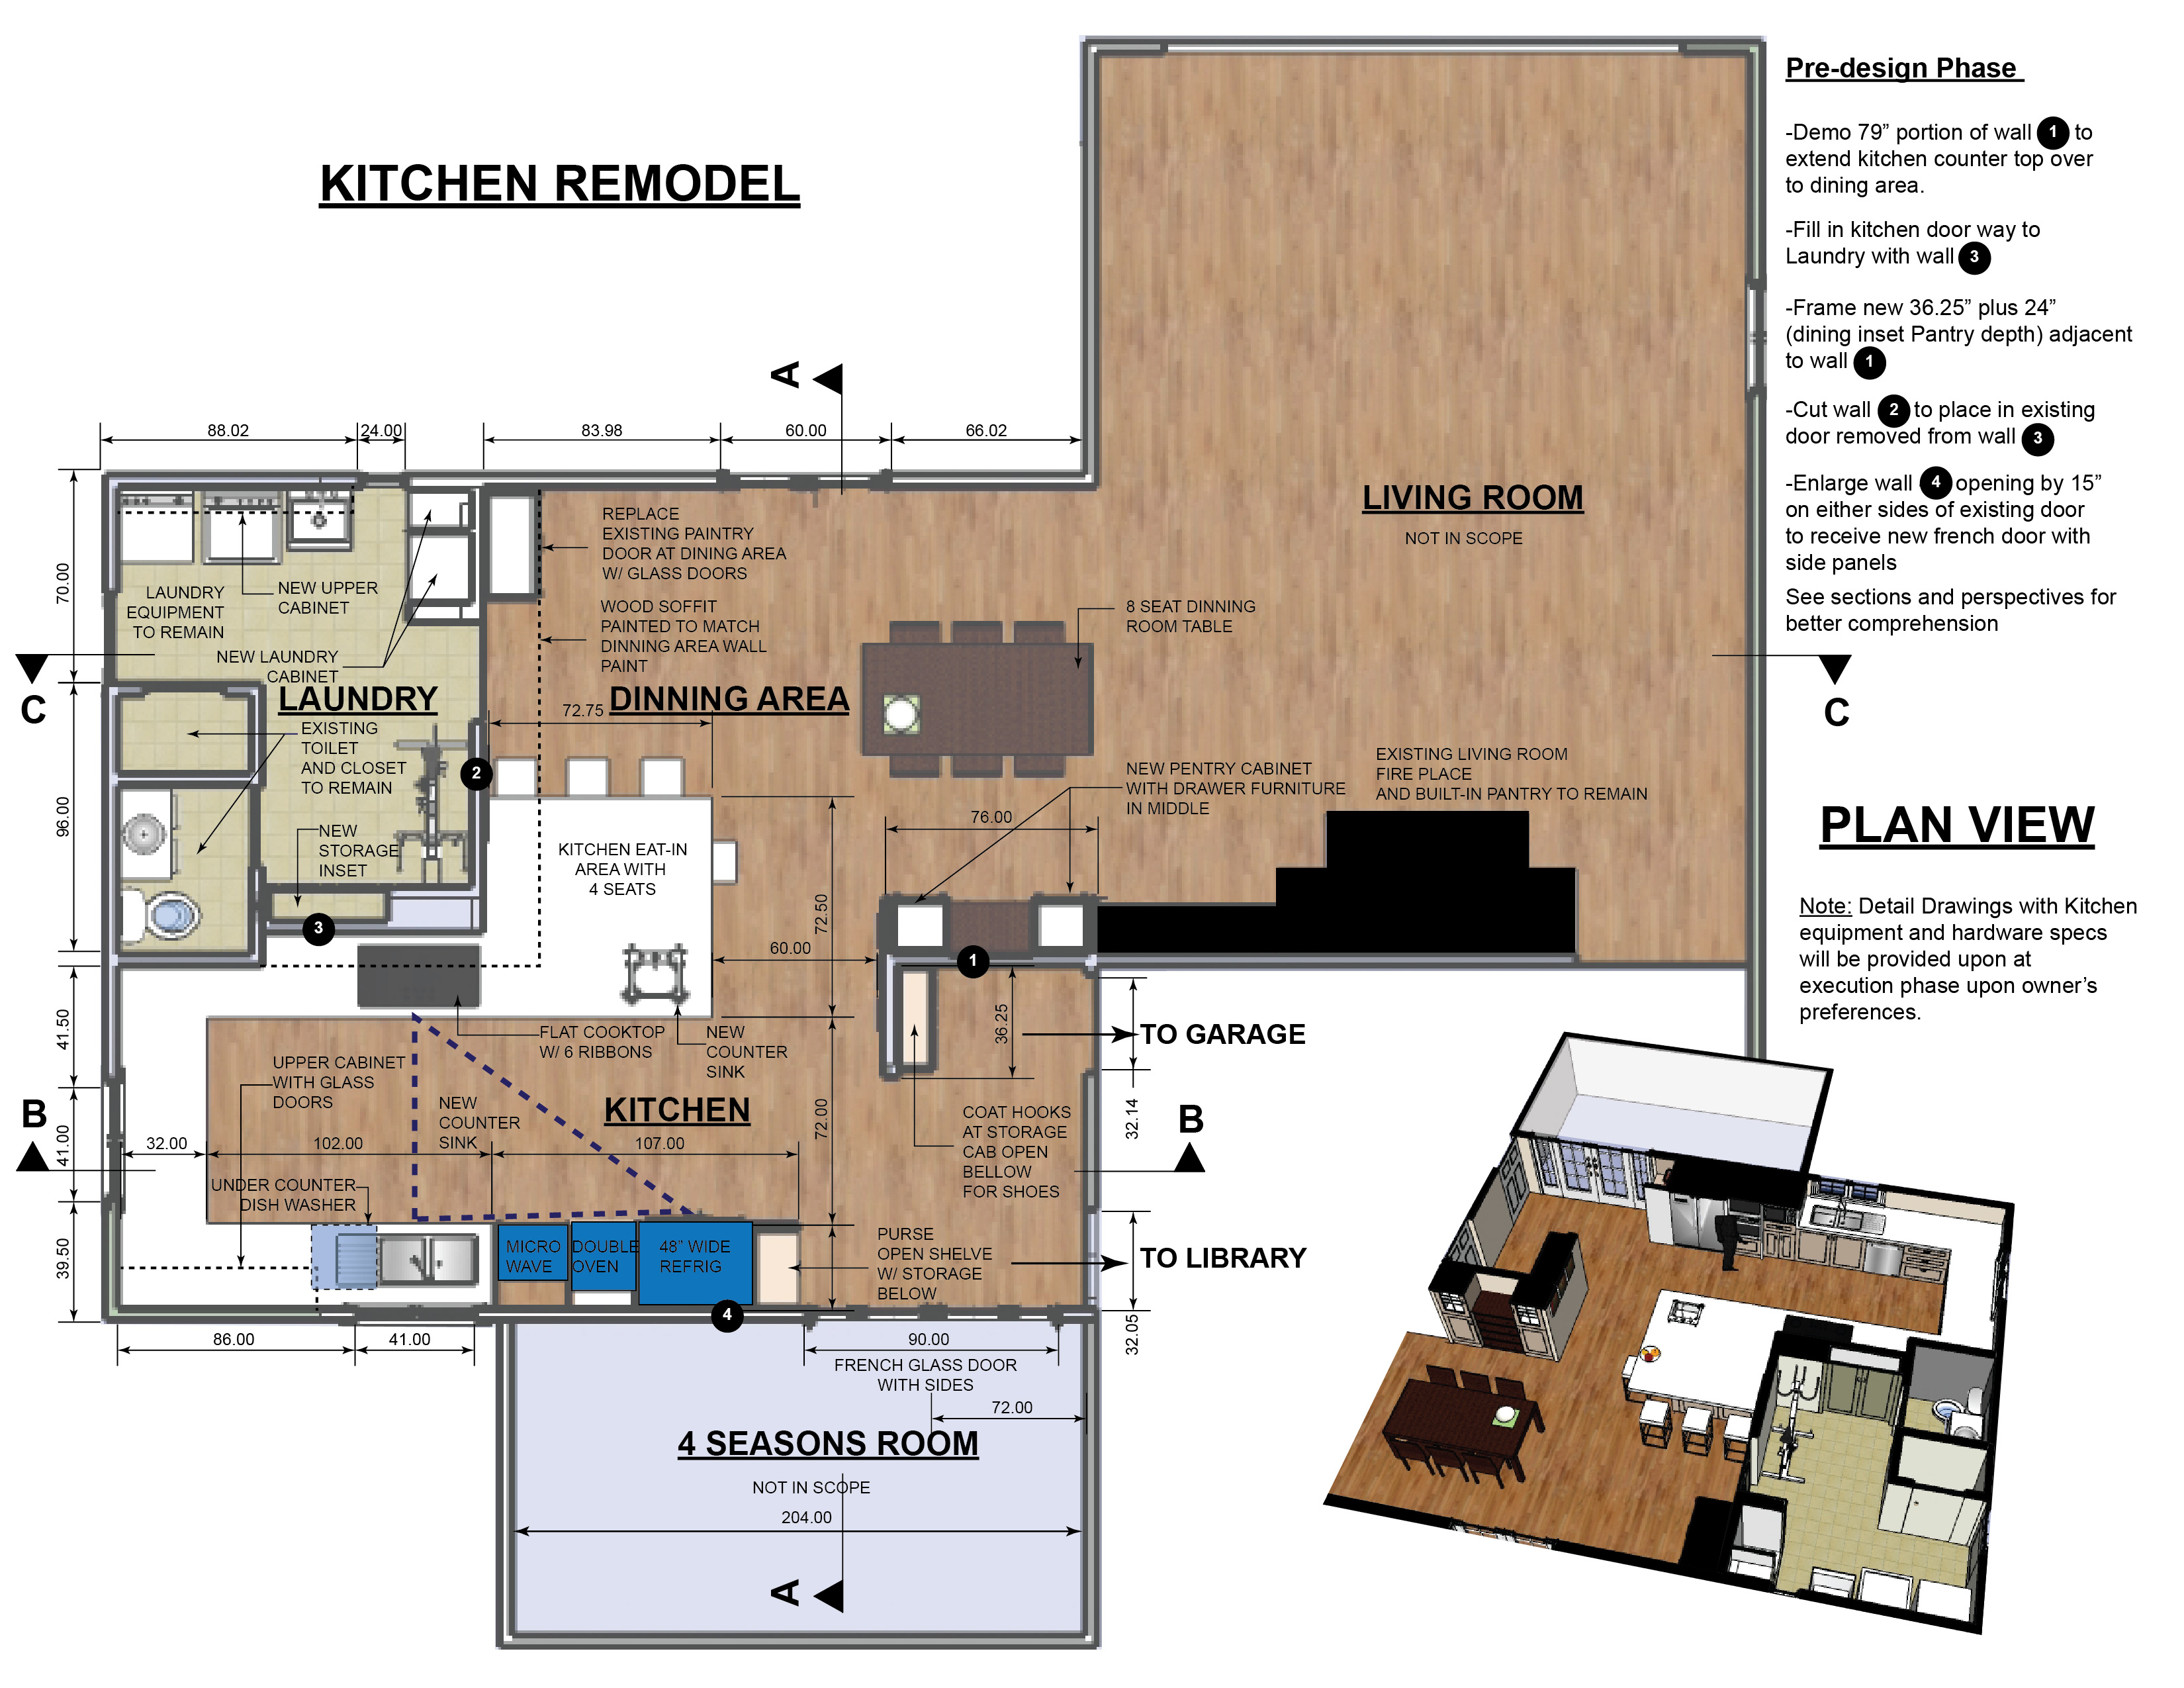 Viewdesignerproject projectkitchen design for How to plan a remodeling project